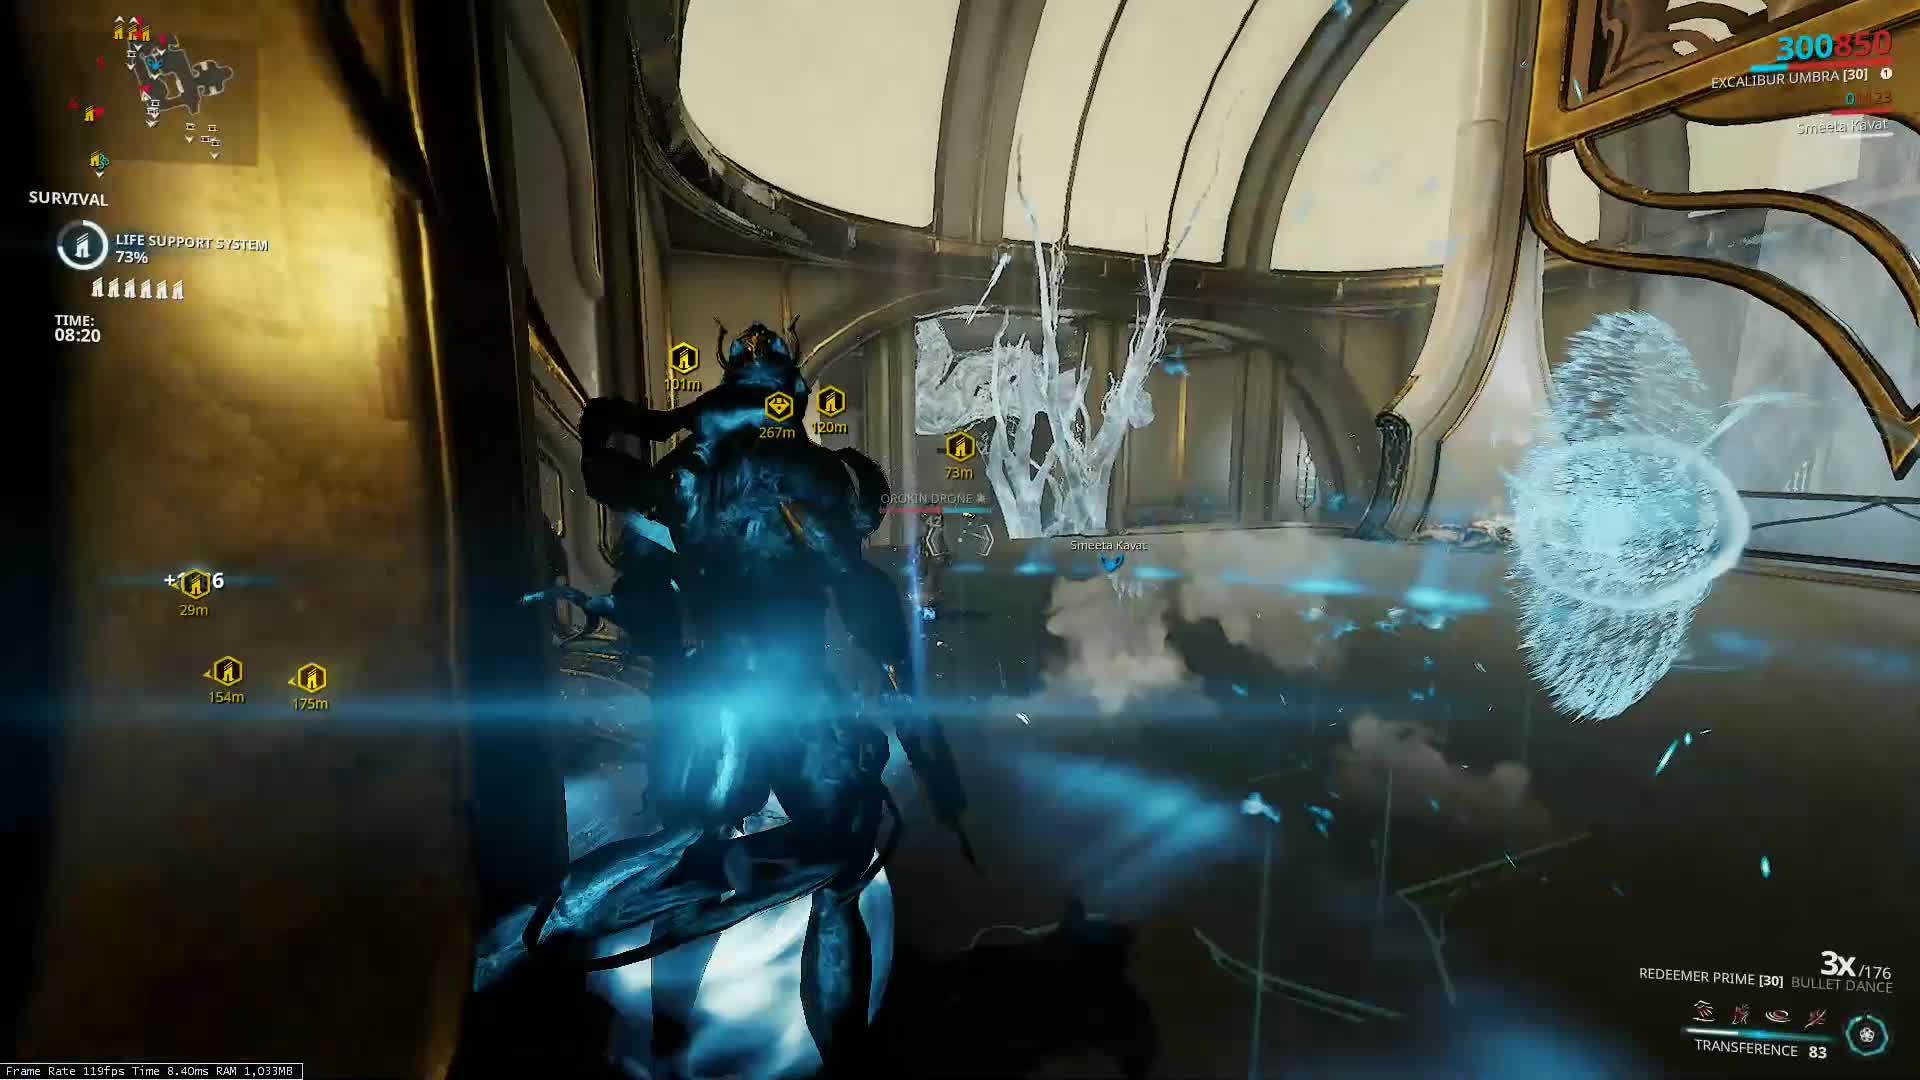 catchmoon, redeemer prime, warframe, the good stuff GIFs